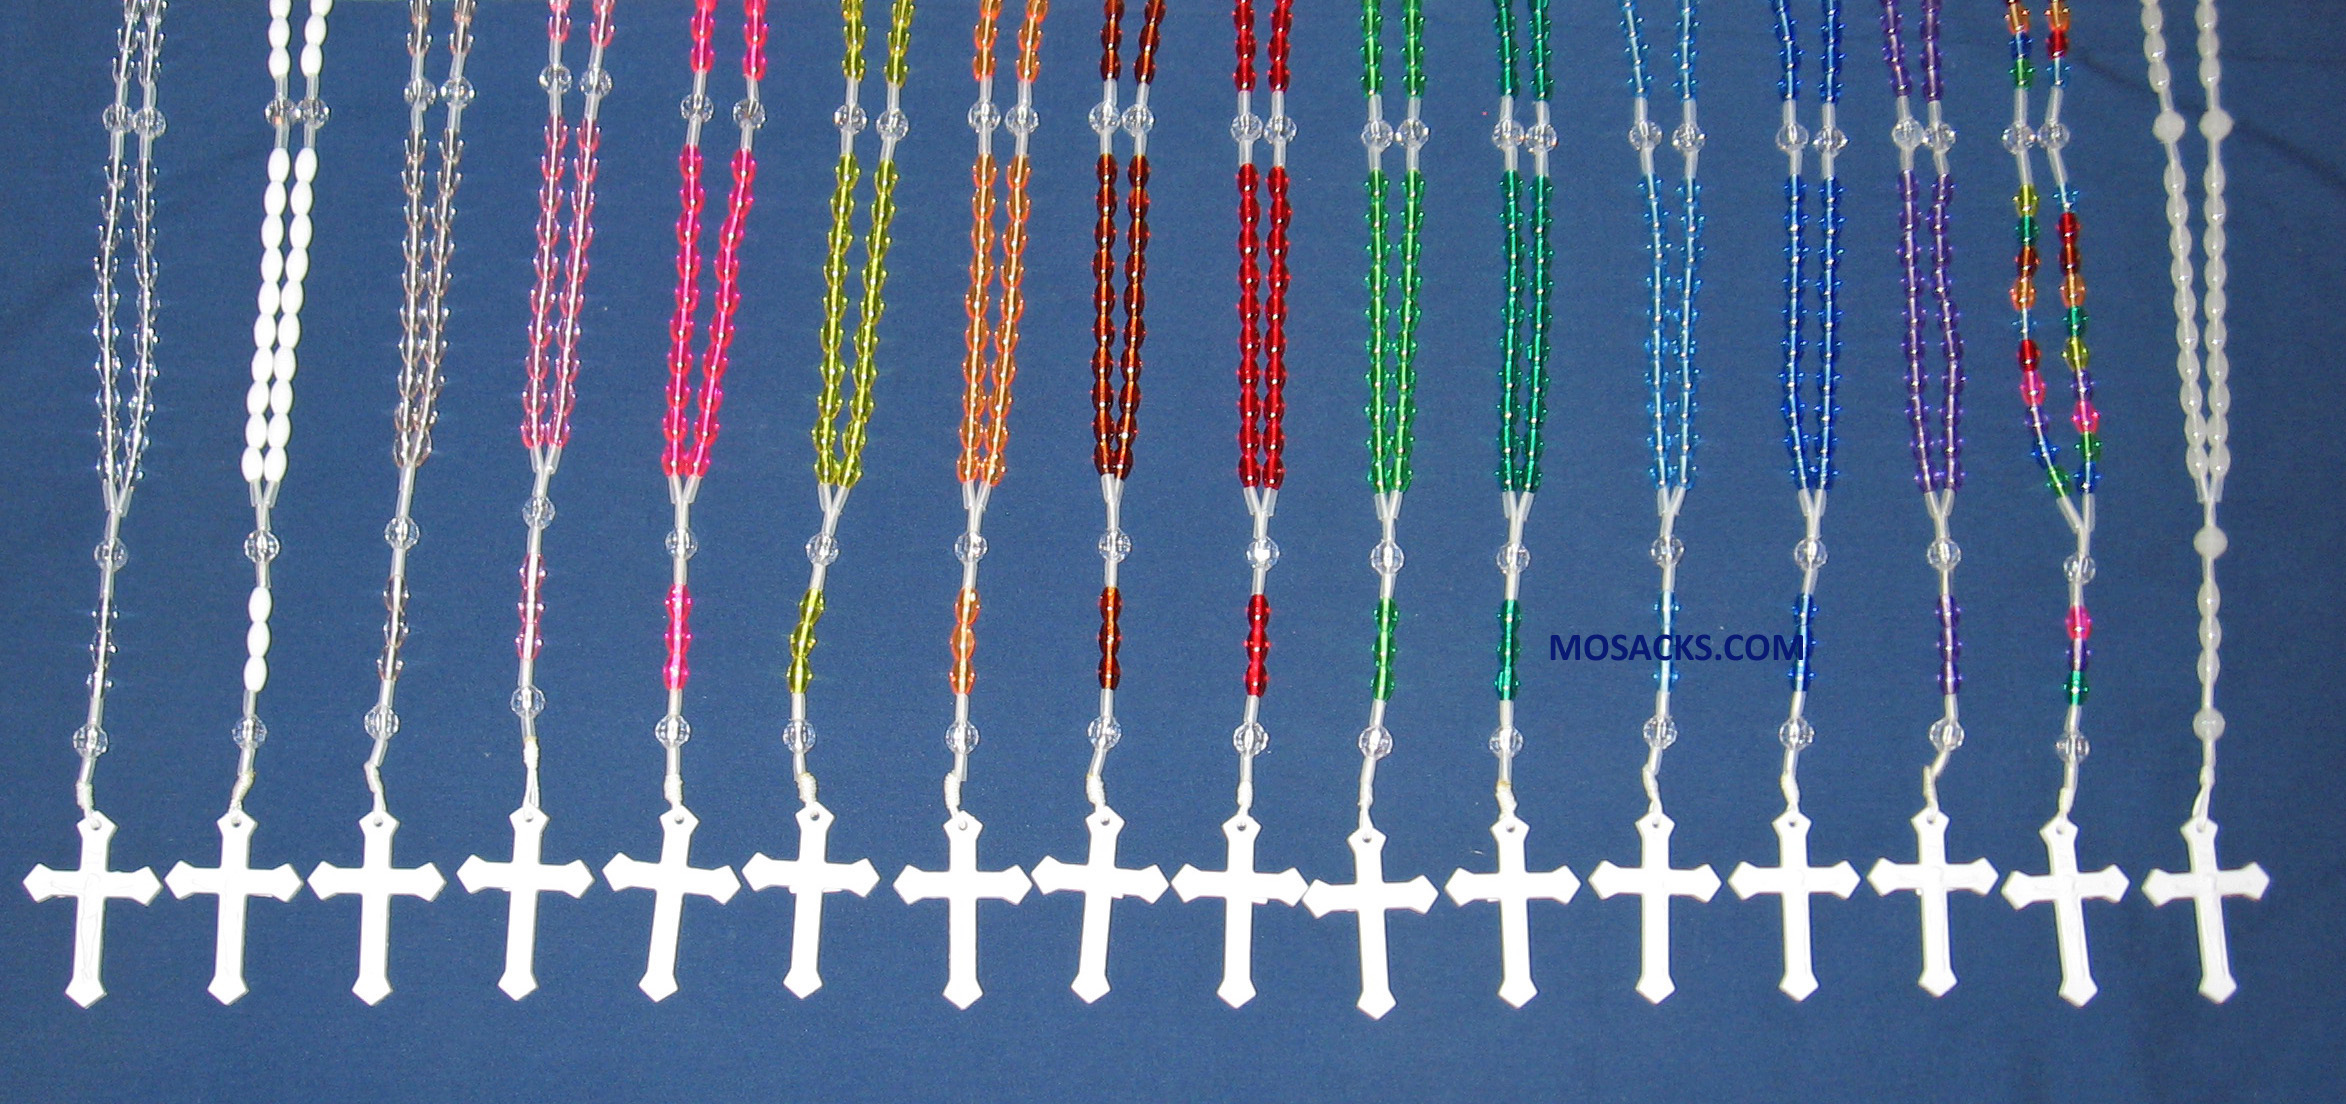 Rosaries with Plastic Beads colors vary